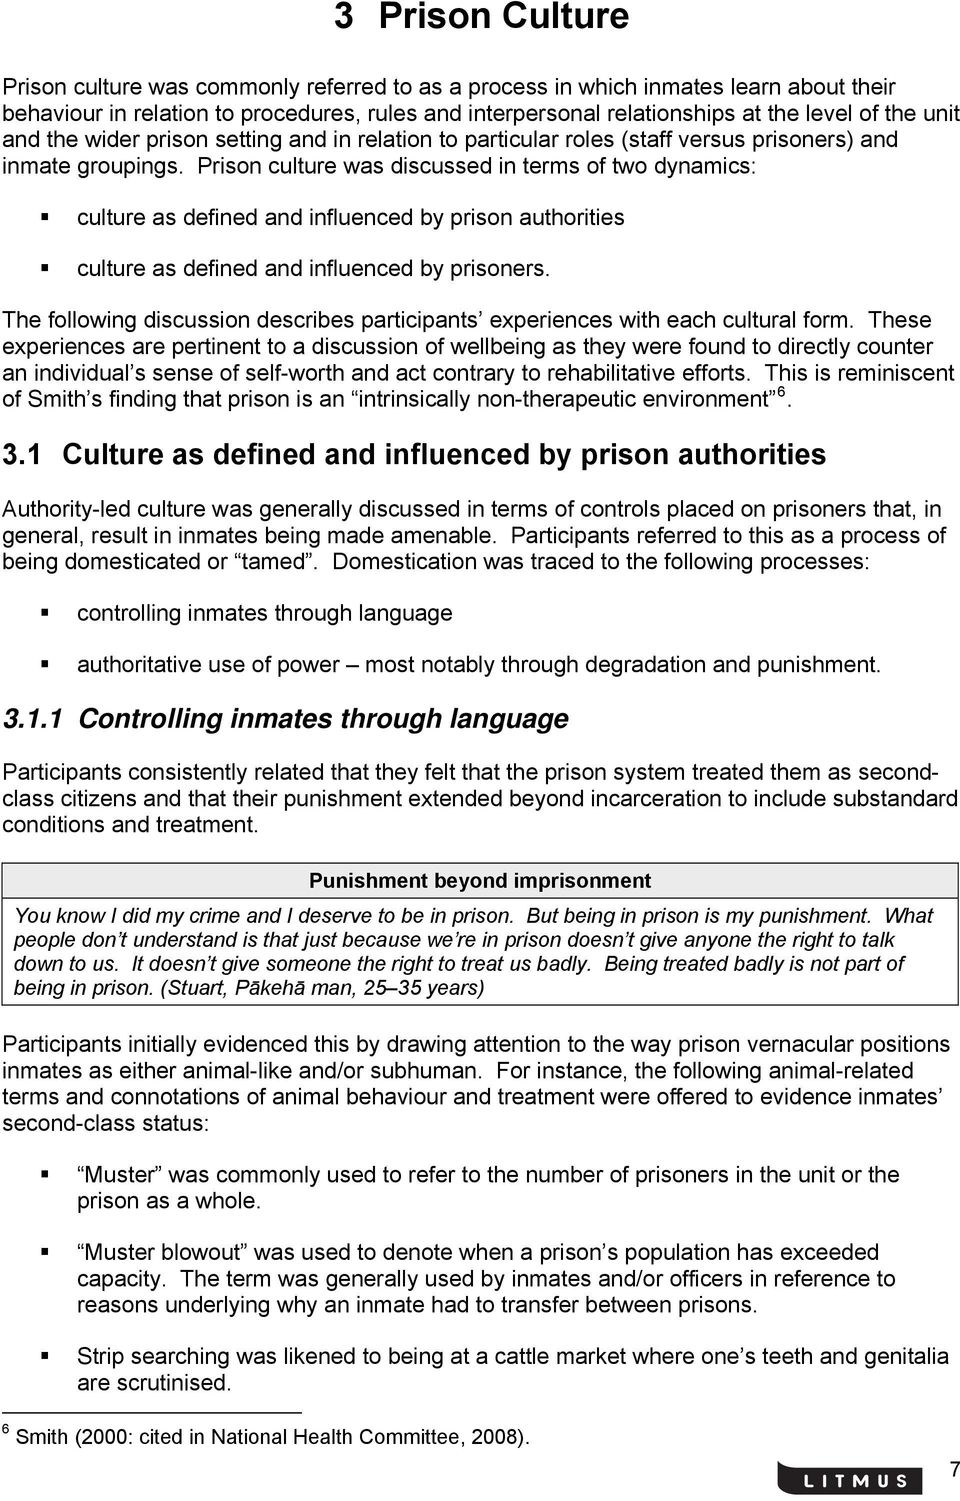 Prison culture was discussed in terms of two dynamics: culture as defined and influenced by prison authorities culture as defined and influenced by prisoners.